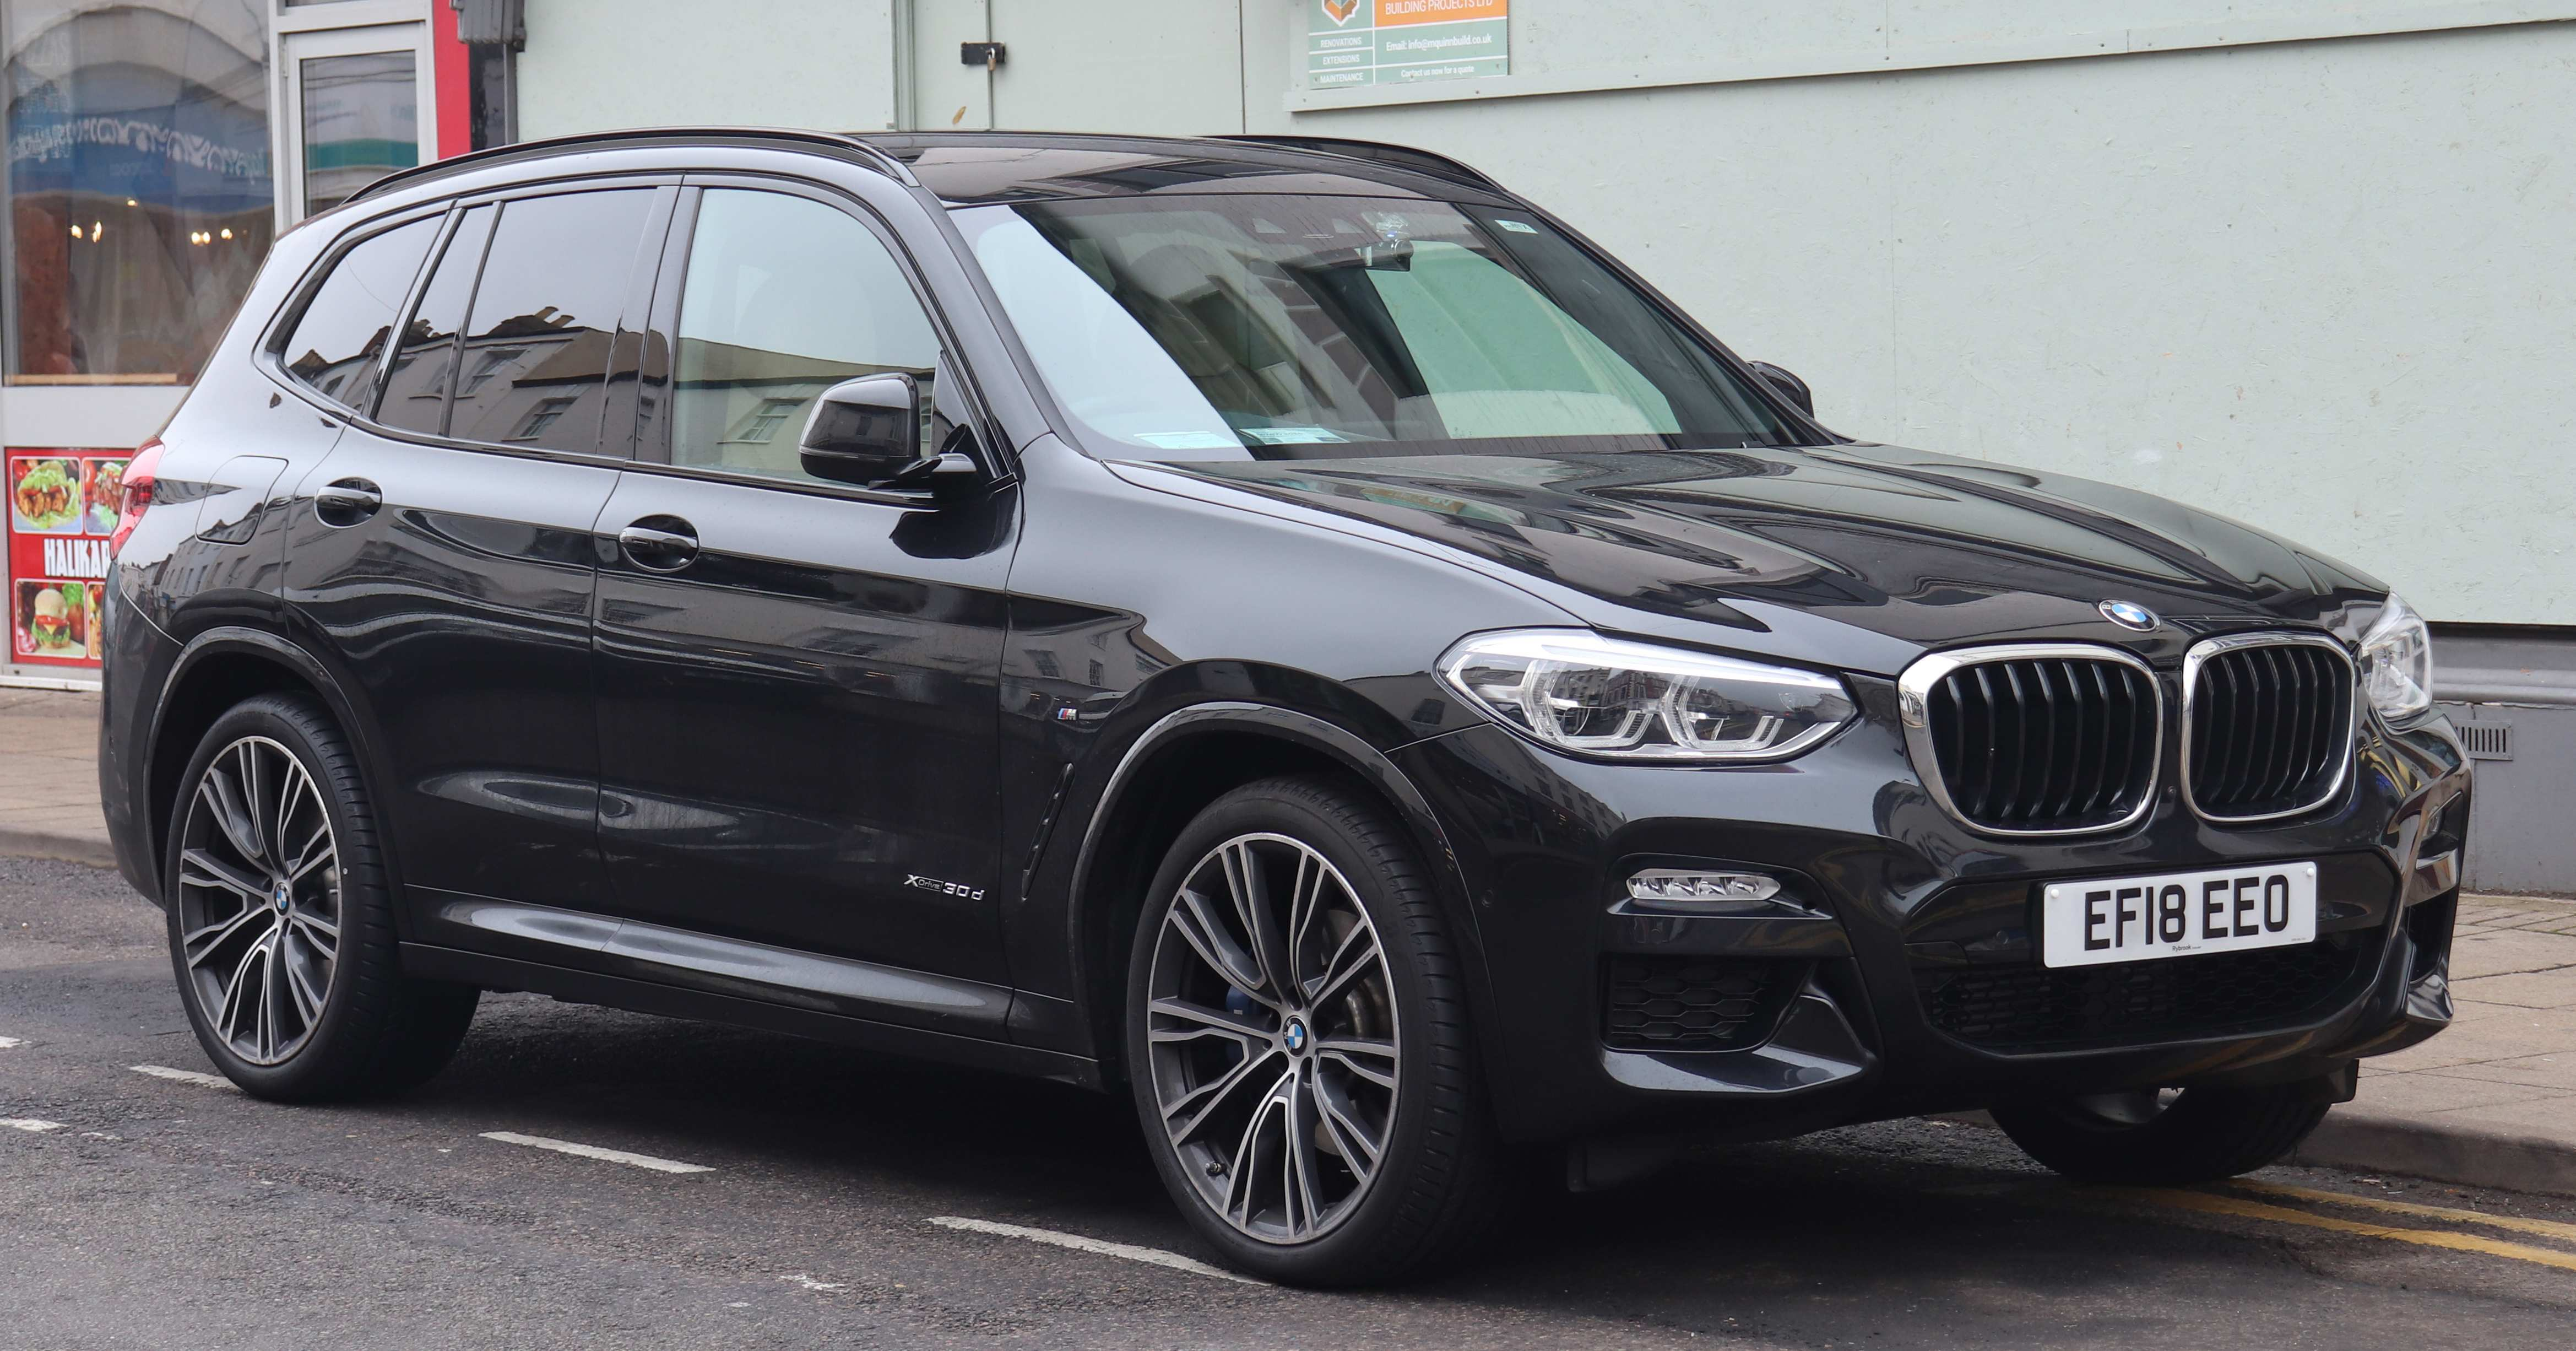 52 All New 2020 BMW Tailgate Specs and Review for 2020 BMW Tailgate